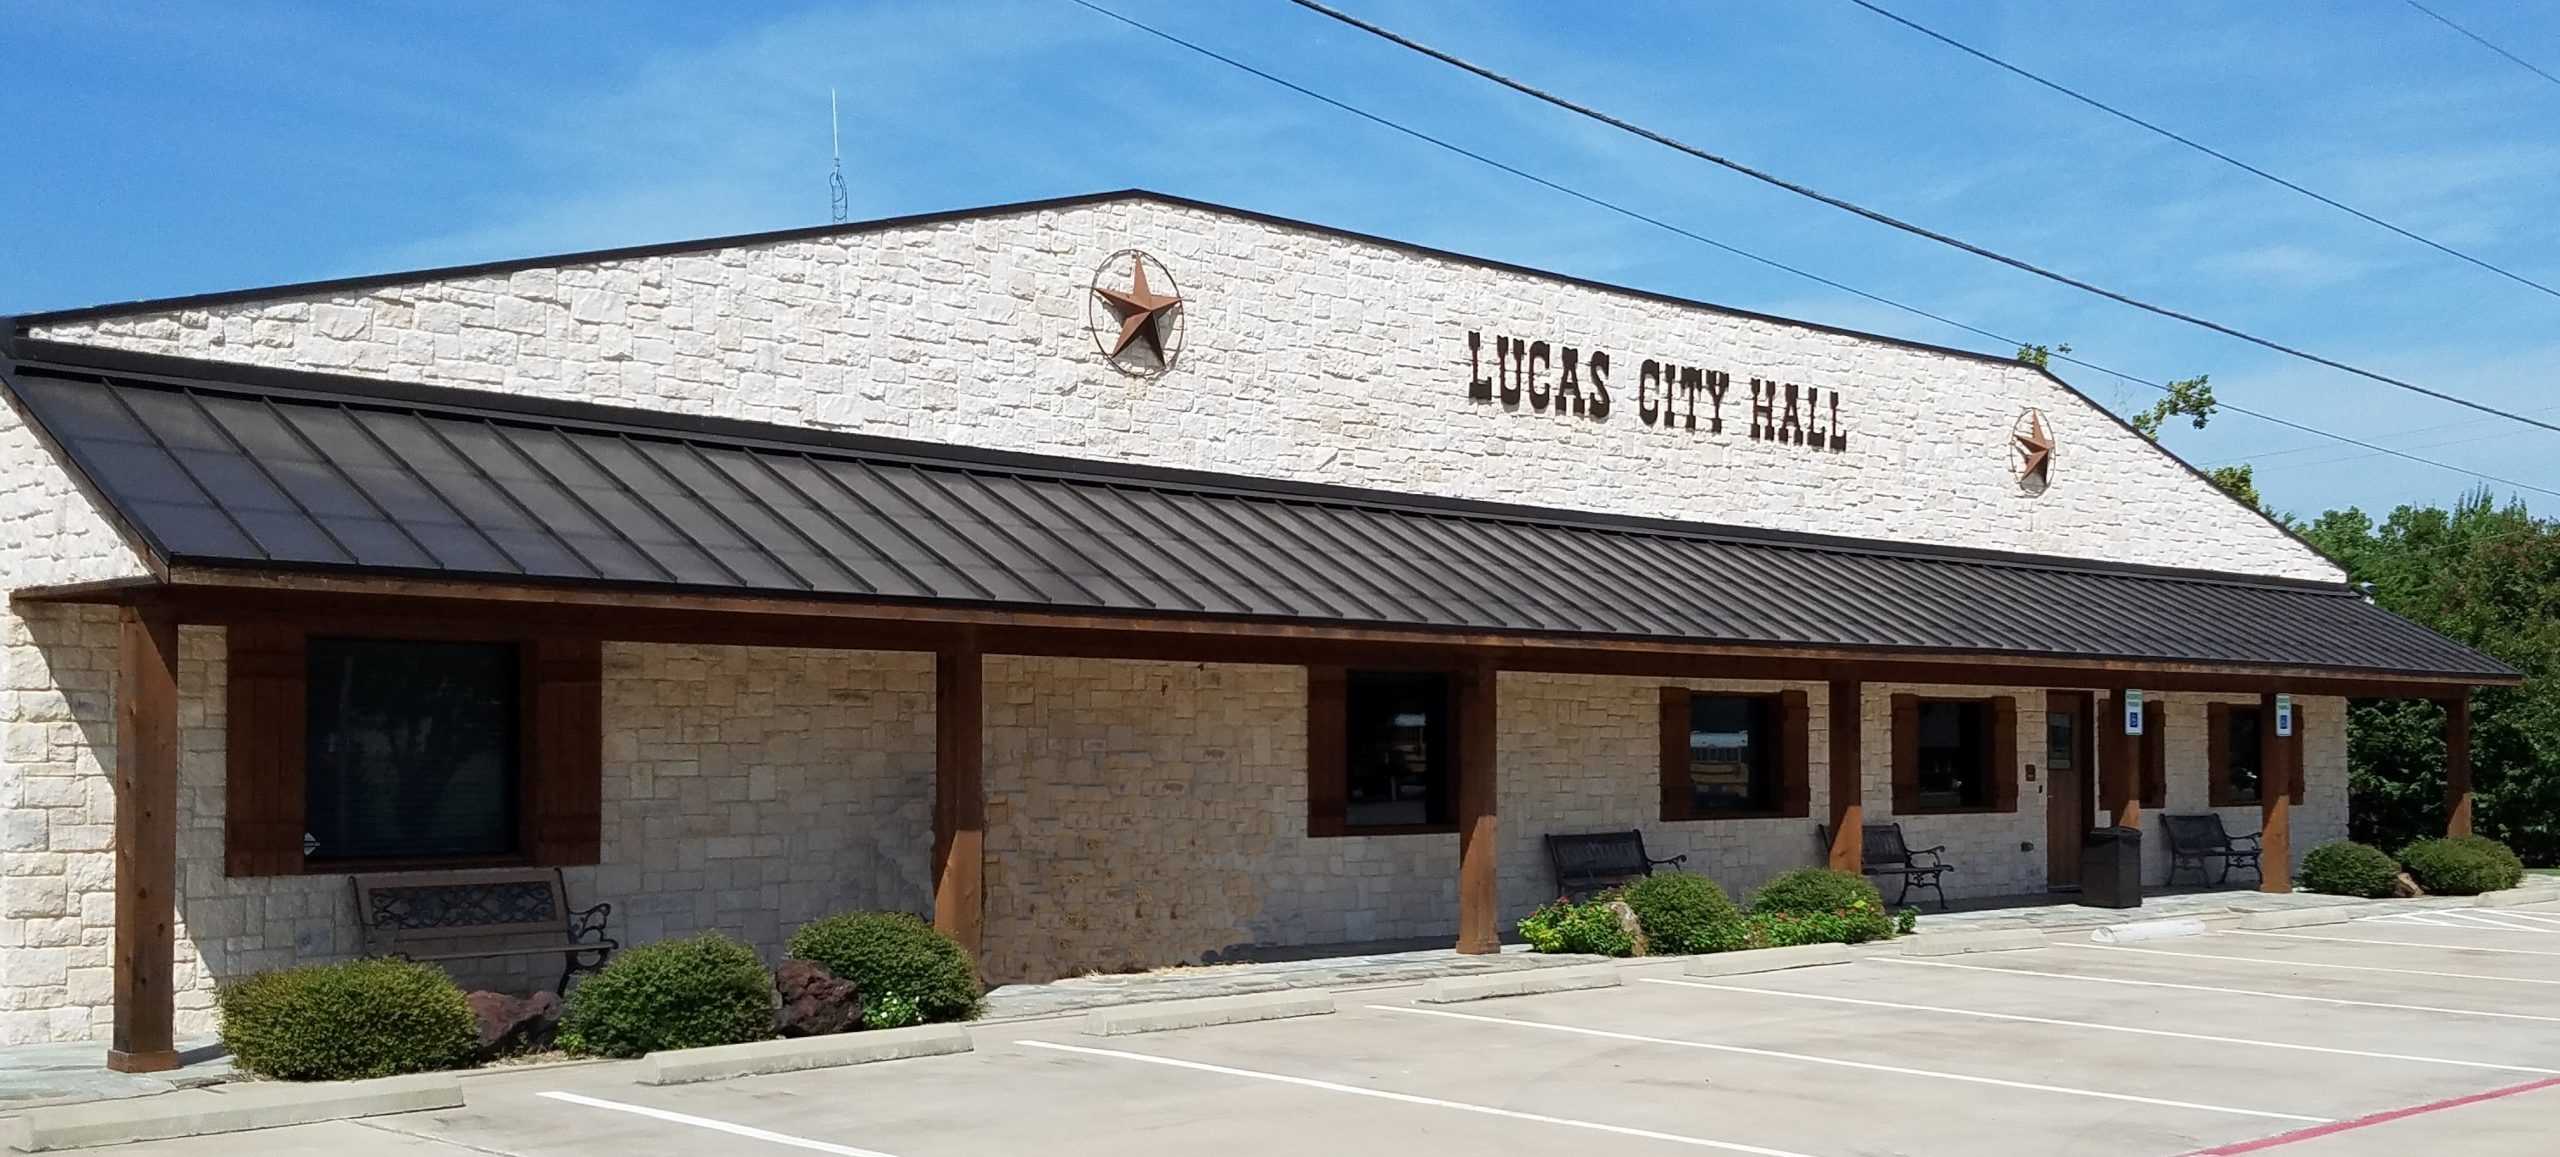 Lucas City Hall